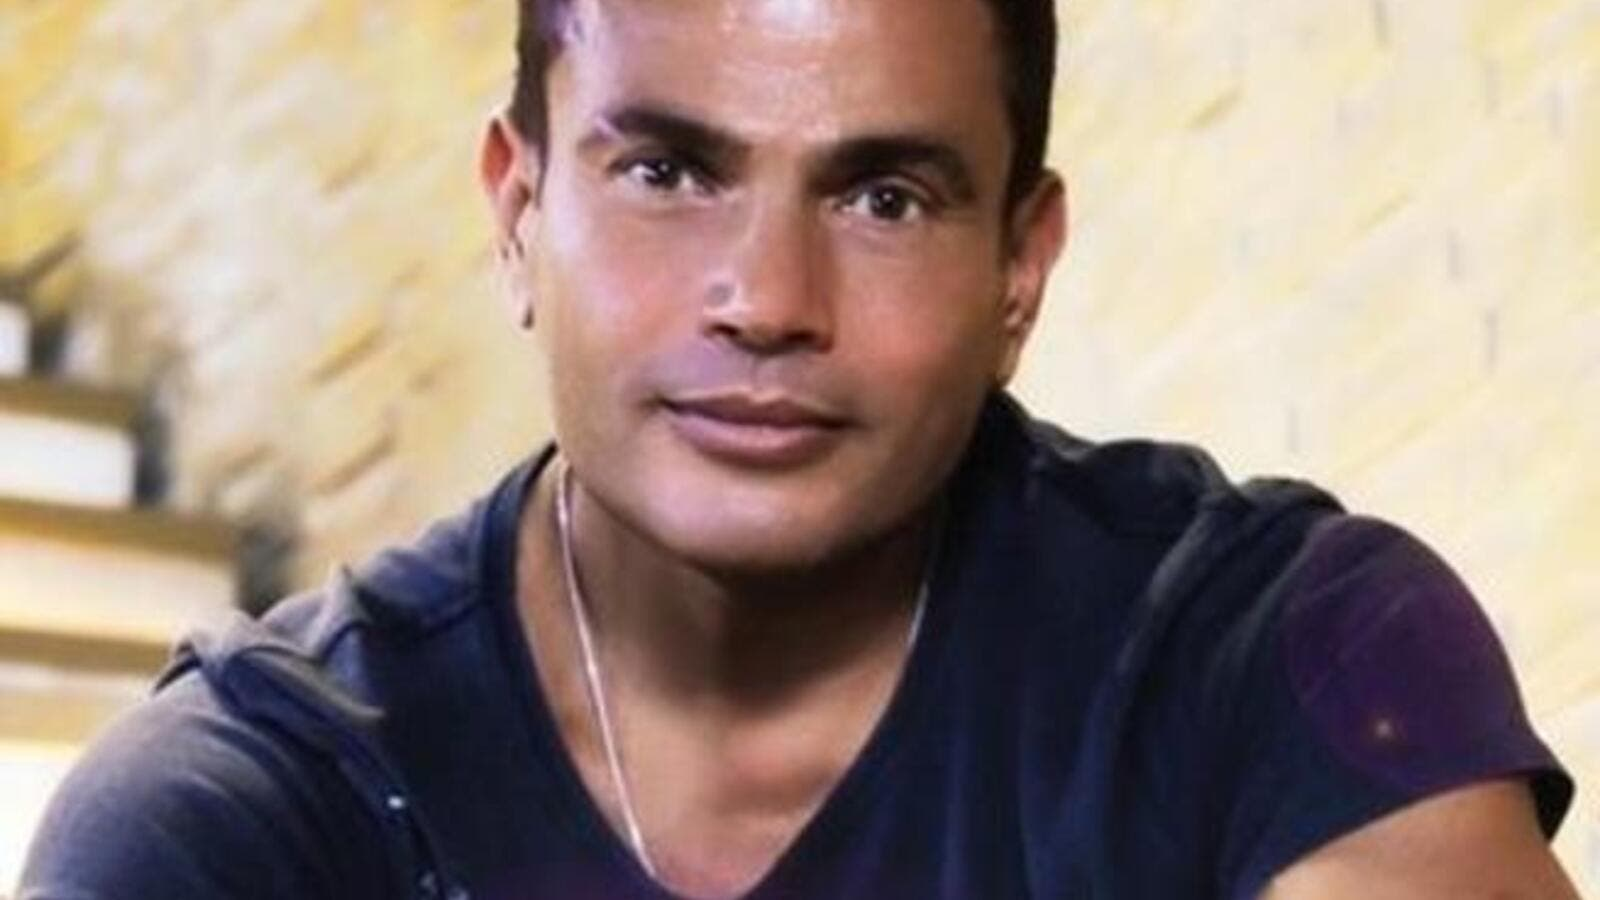 Amr Fawzi amr diab gets ready for live performance with lucky fans